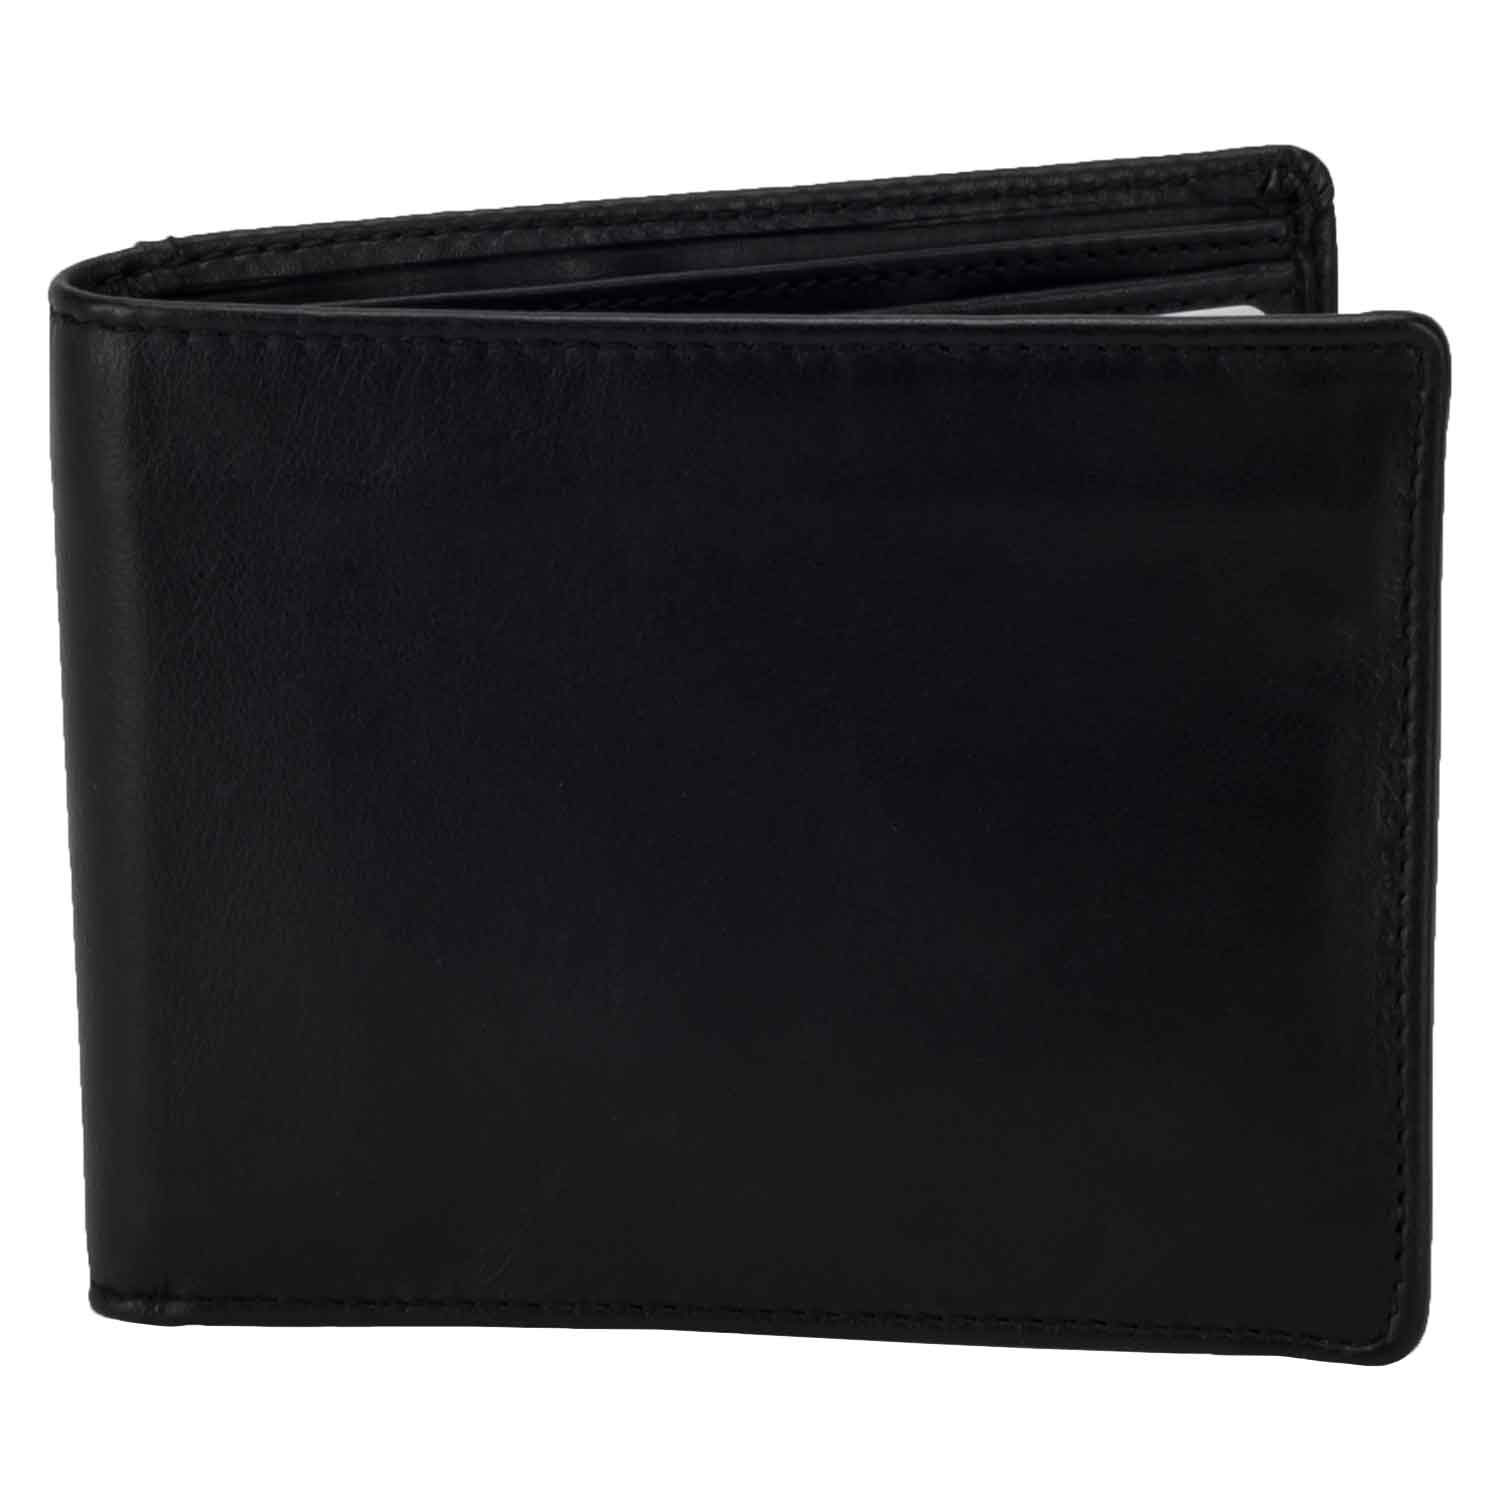 Wallet by DiLoro Italy Mens Wallets RFID Safe Genuine Leather Black Slim 2403-BK - Front View